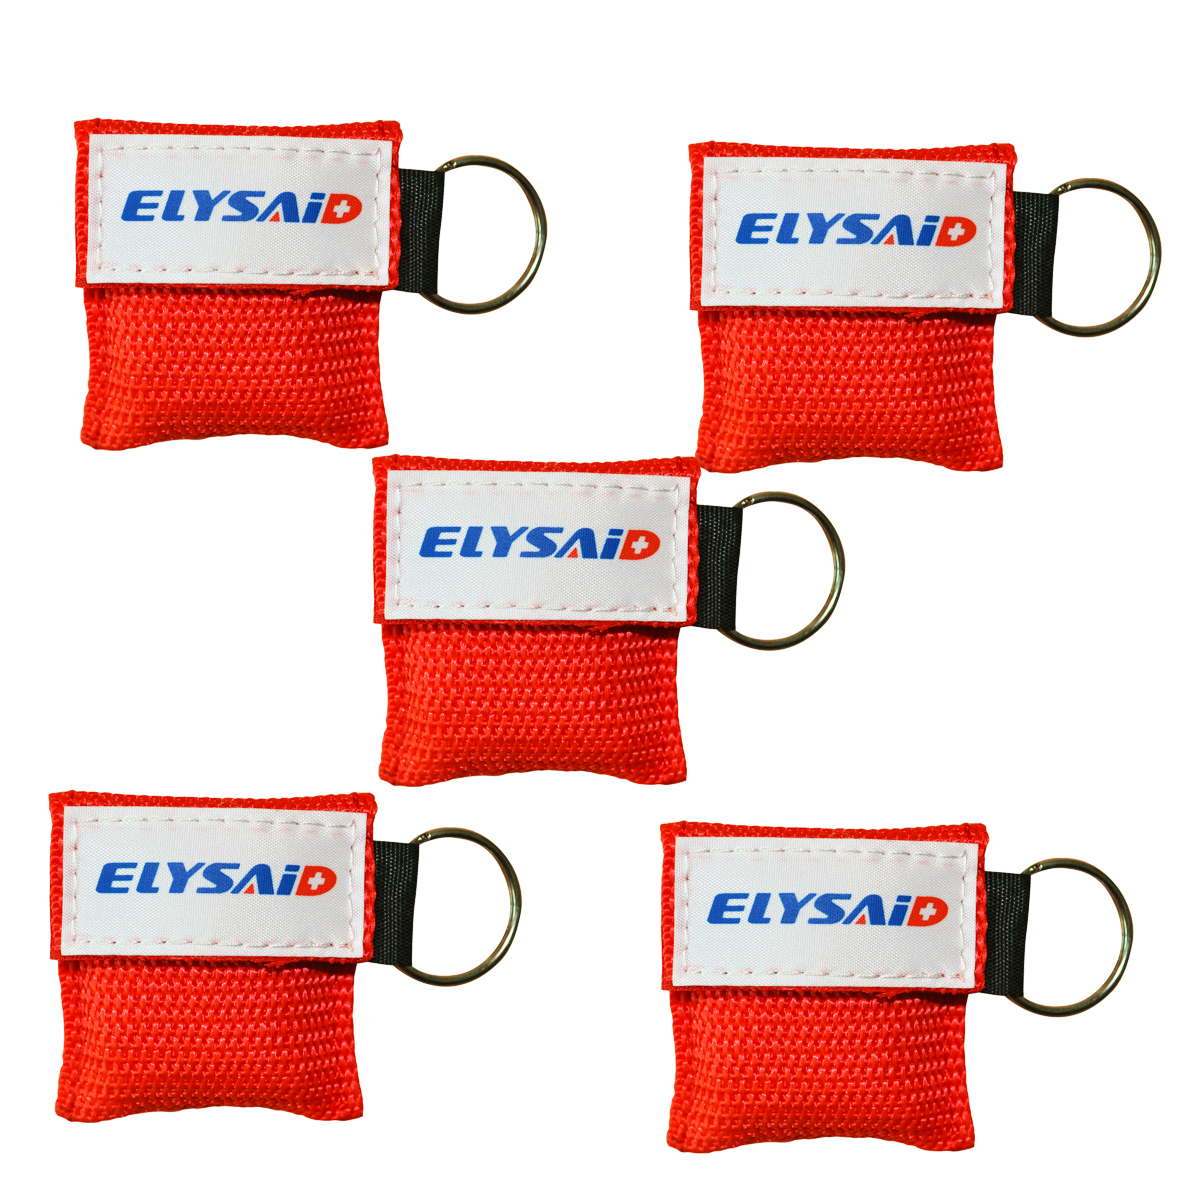 50Pcs Hot Sale CPR Resuscitator Mask Face Shield One-way Valve Mouth To Mouth Breathing For First Aid Red Nylon Pouch Wrapped polisport motorcycle led tail light&rear fender stop enduro taillight mx trail supermoto ktm cr exc wrf 250 400 426 450 page 10